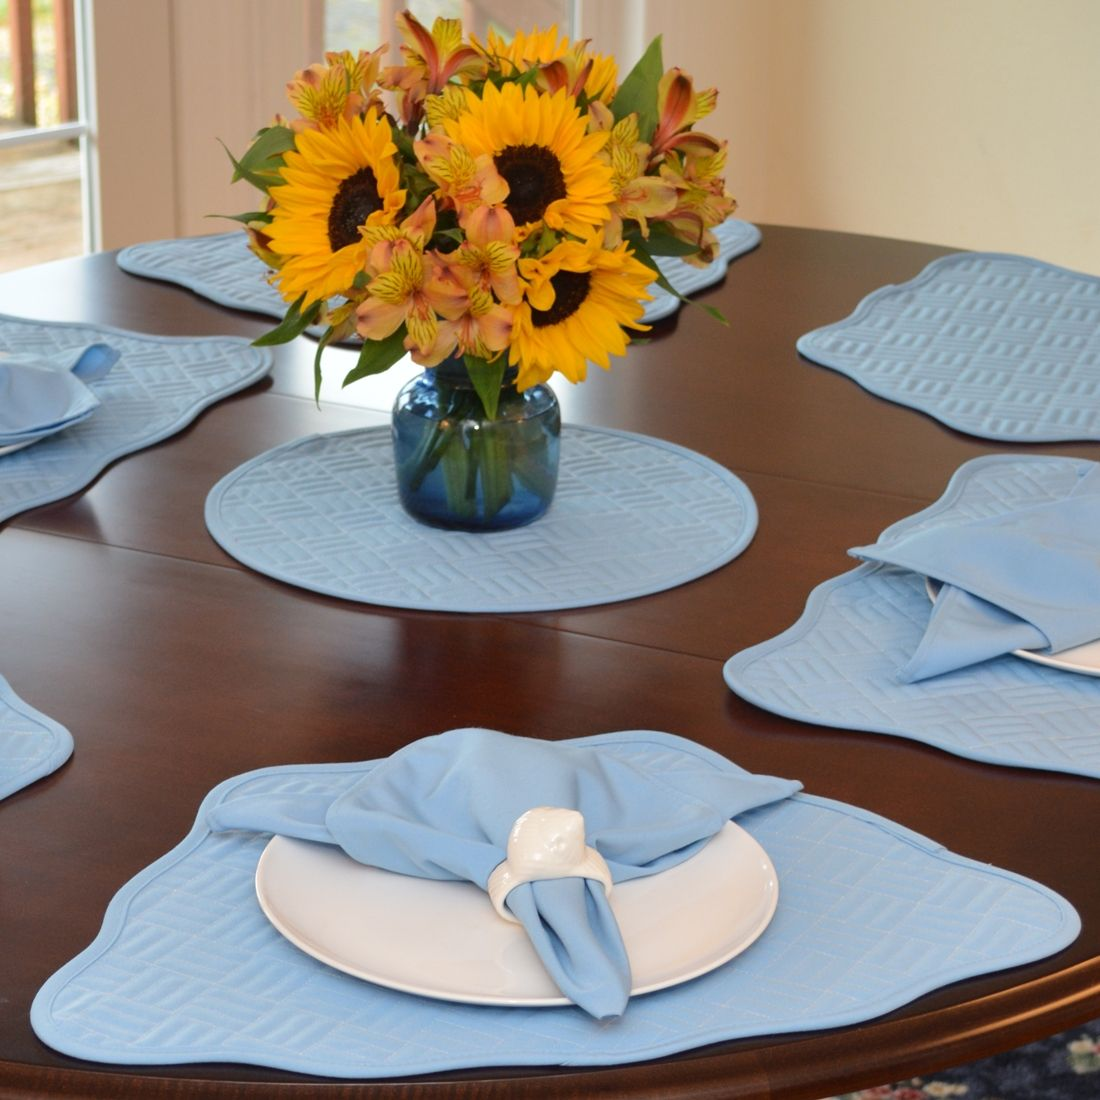 Wedge Placemats Pastel Blue Quilted Wedge Shaped Round Table Placemat At Sweetpealinens Com Placemats For Round Table Placemats Table Runner And Placemats